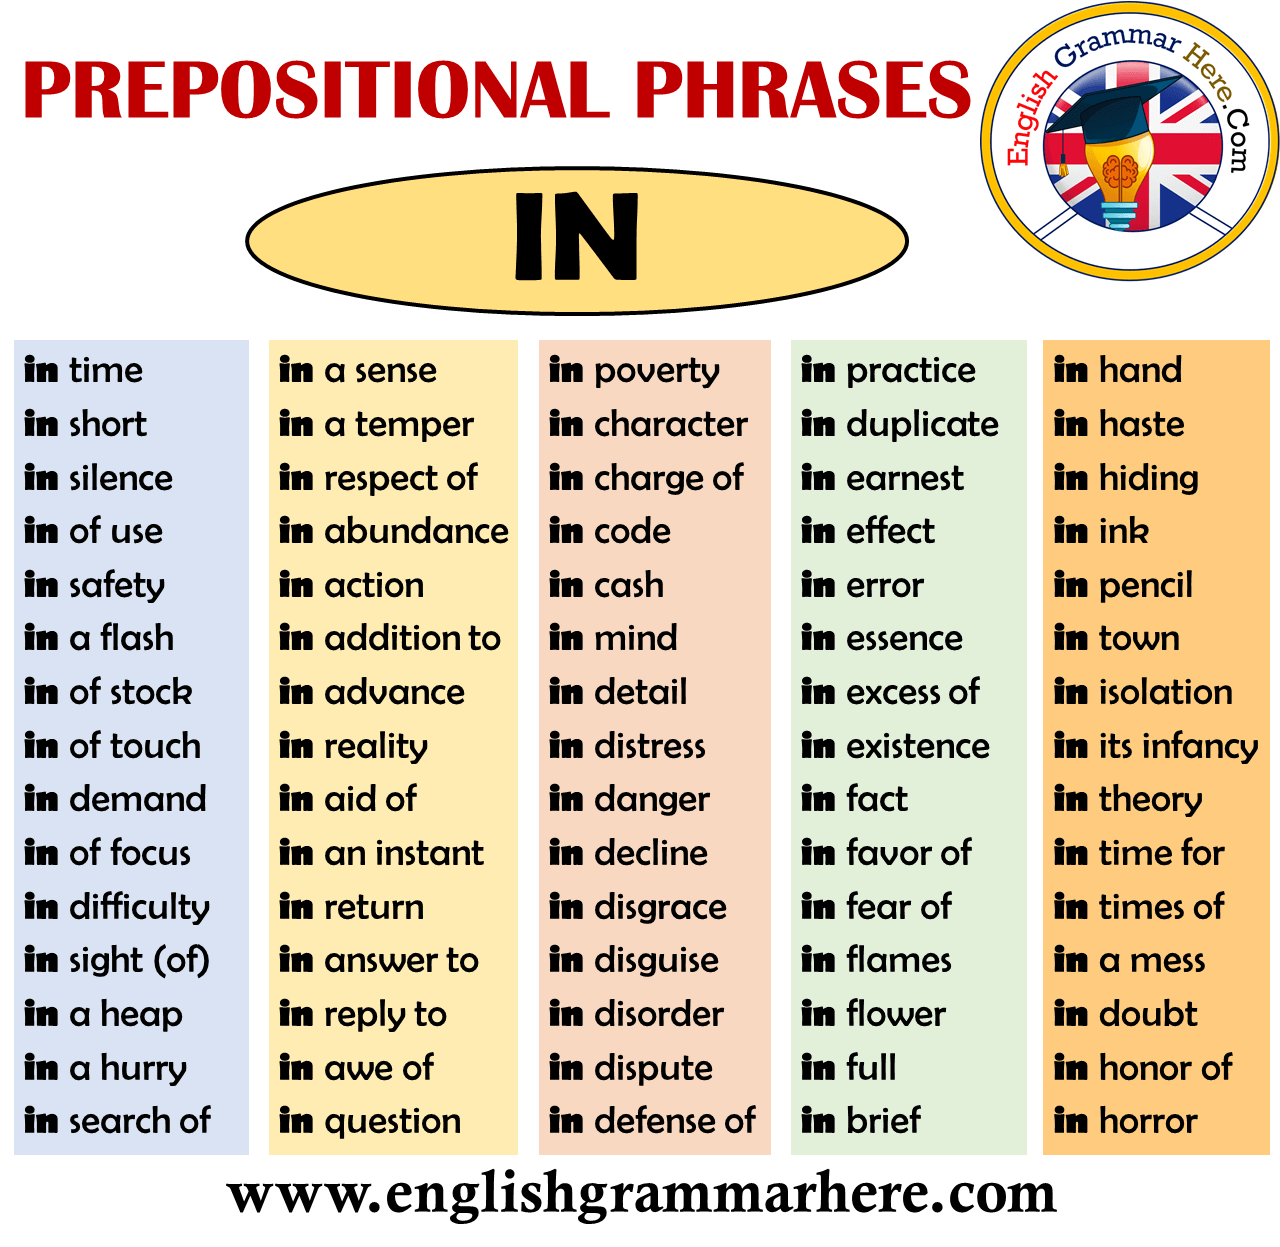 English Prepositional Phrases - IN